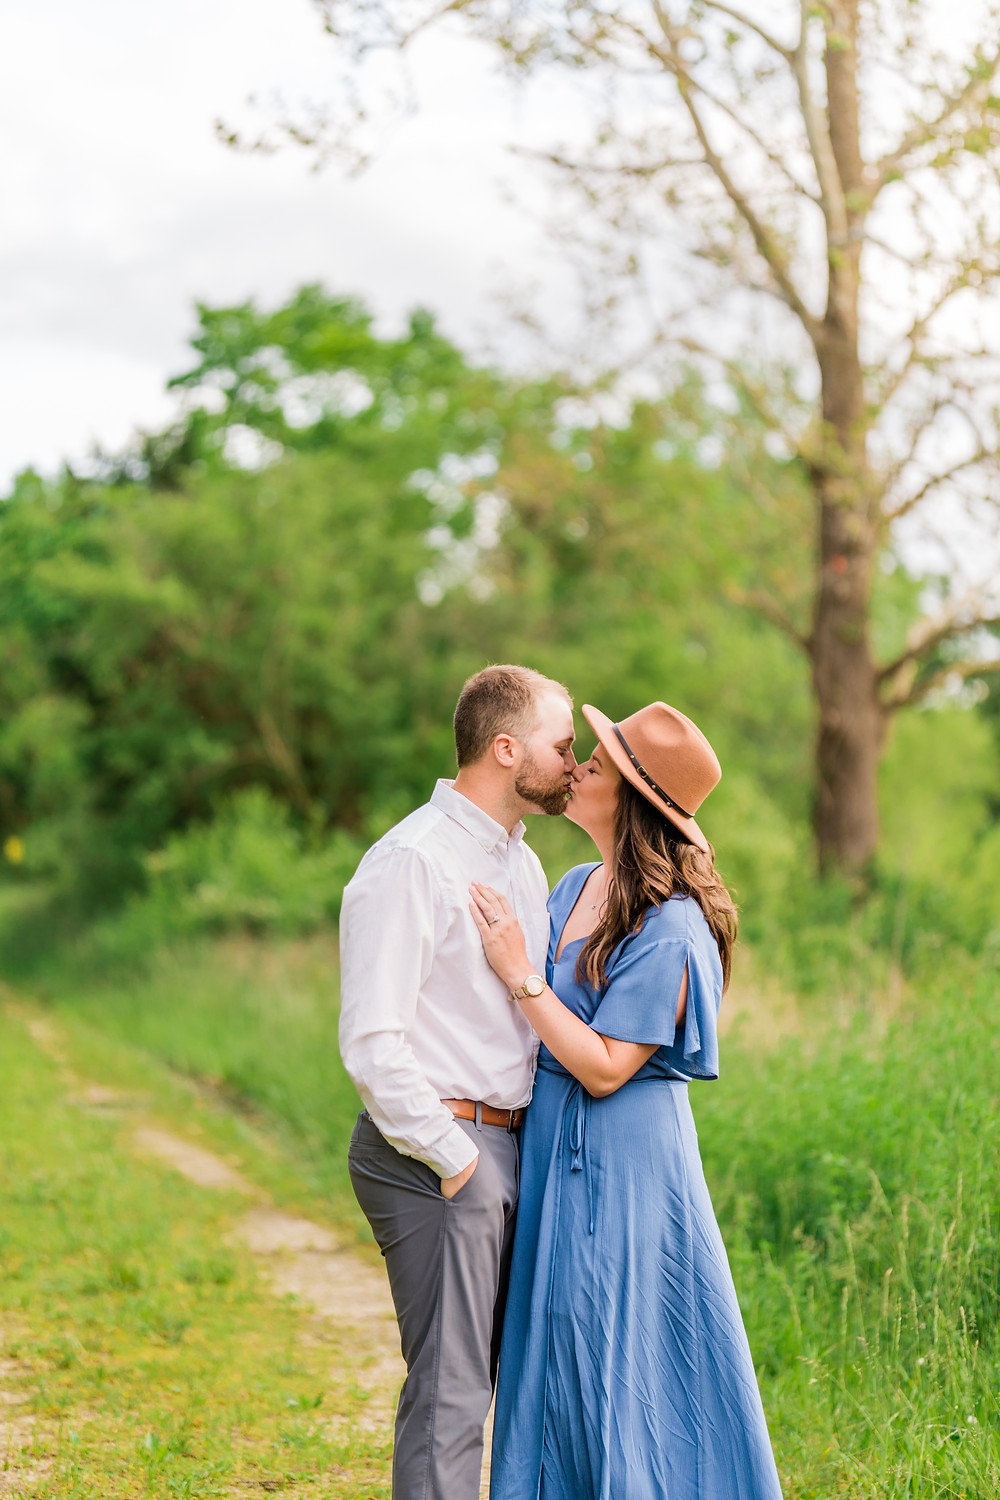 Engagement Session | August A. Busch. Memorial Conservation Area